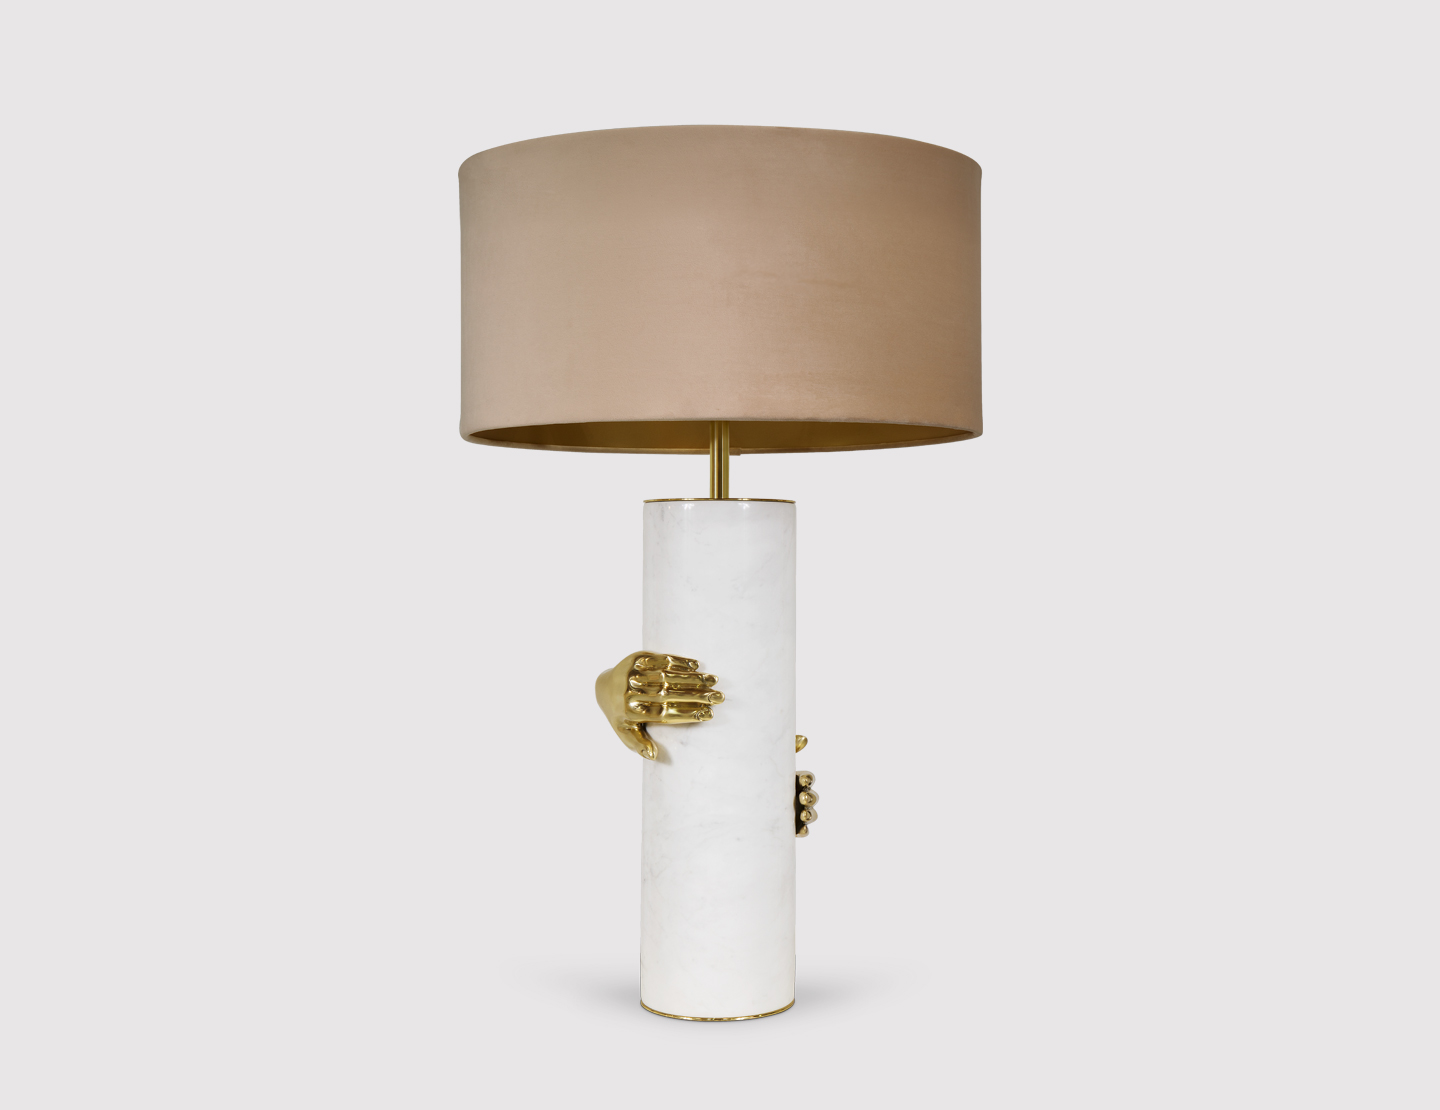 Vengeance table lamp a luxury table lamp by koket vengeance table lamp by koket izmirmasajfo